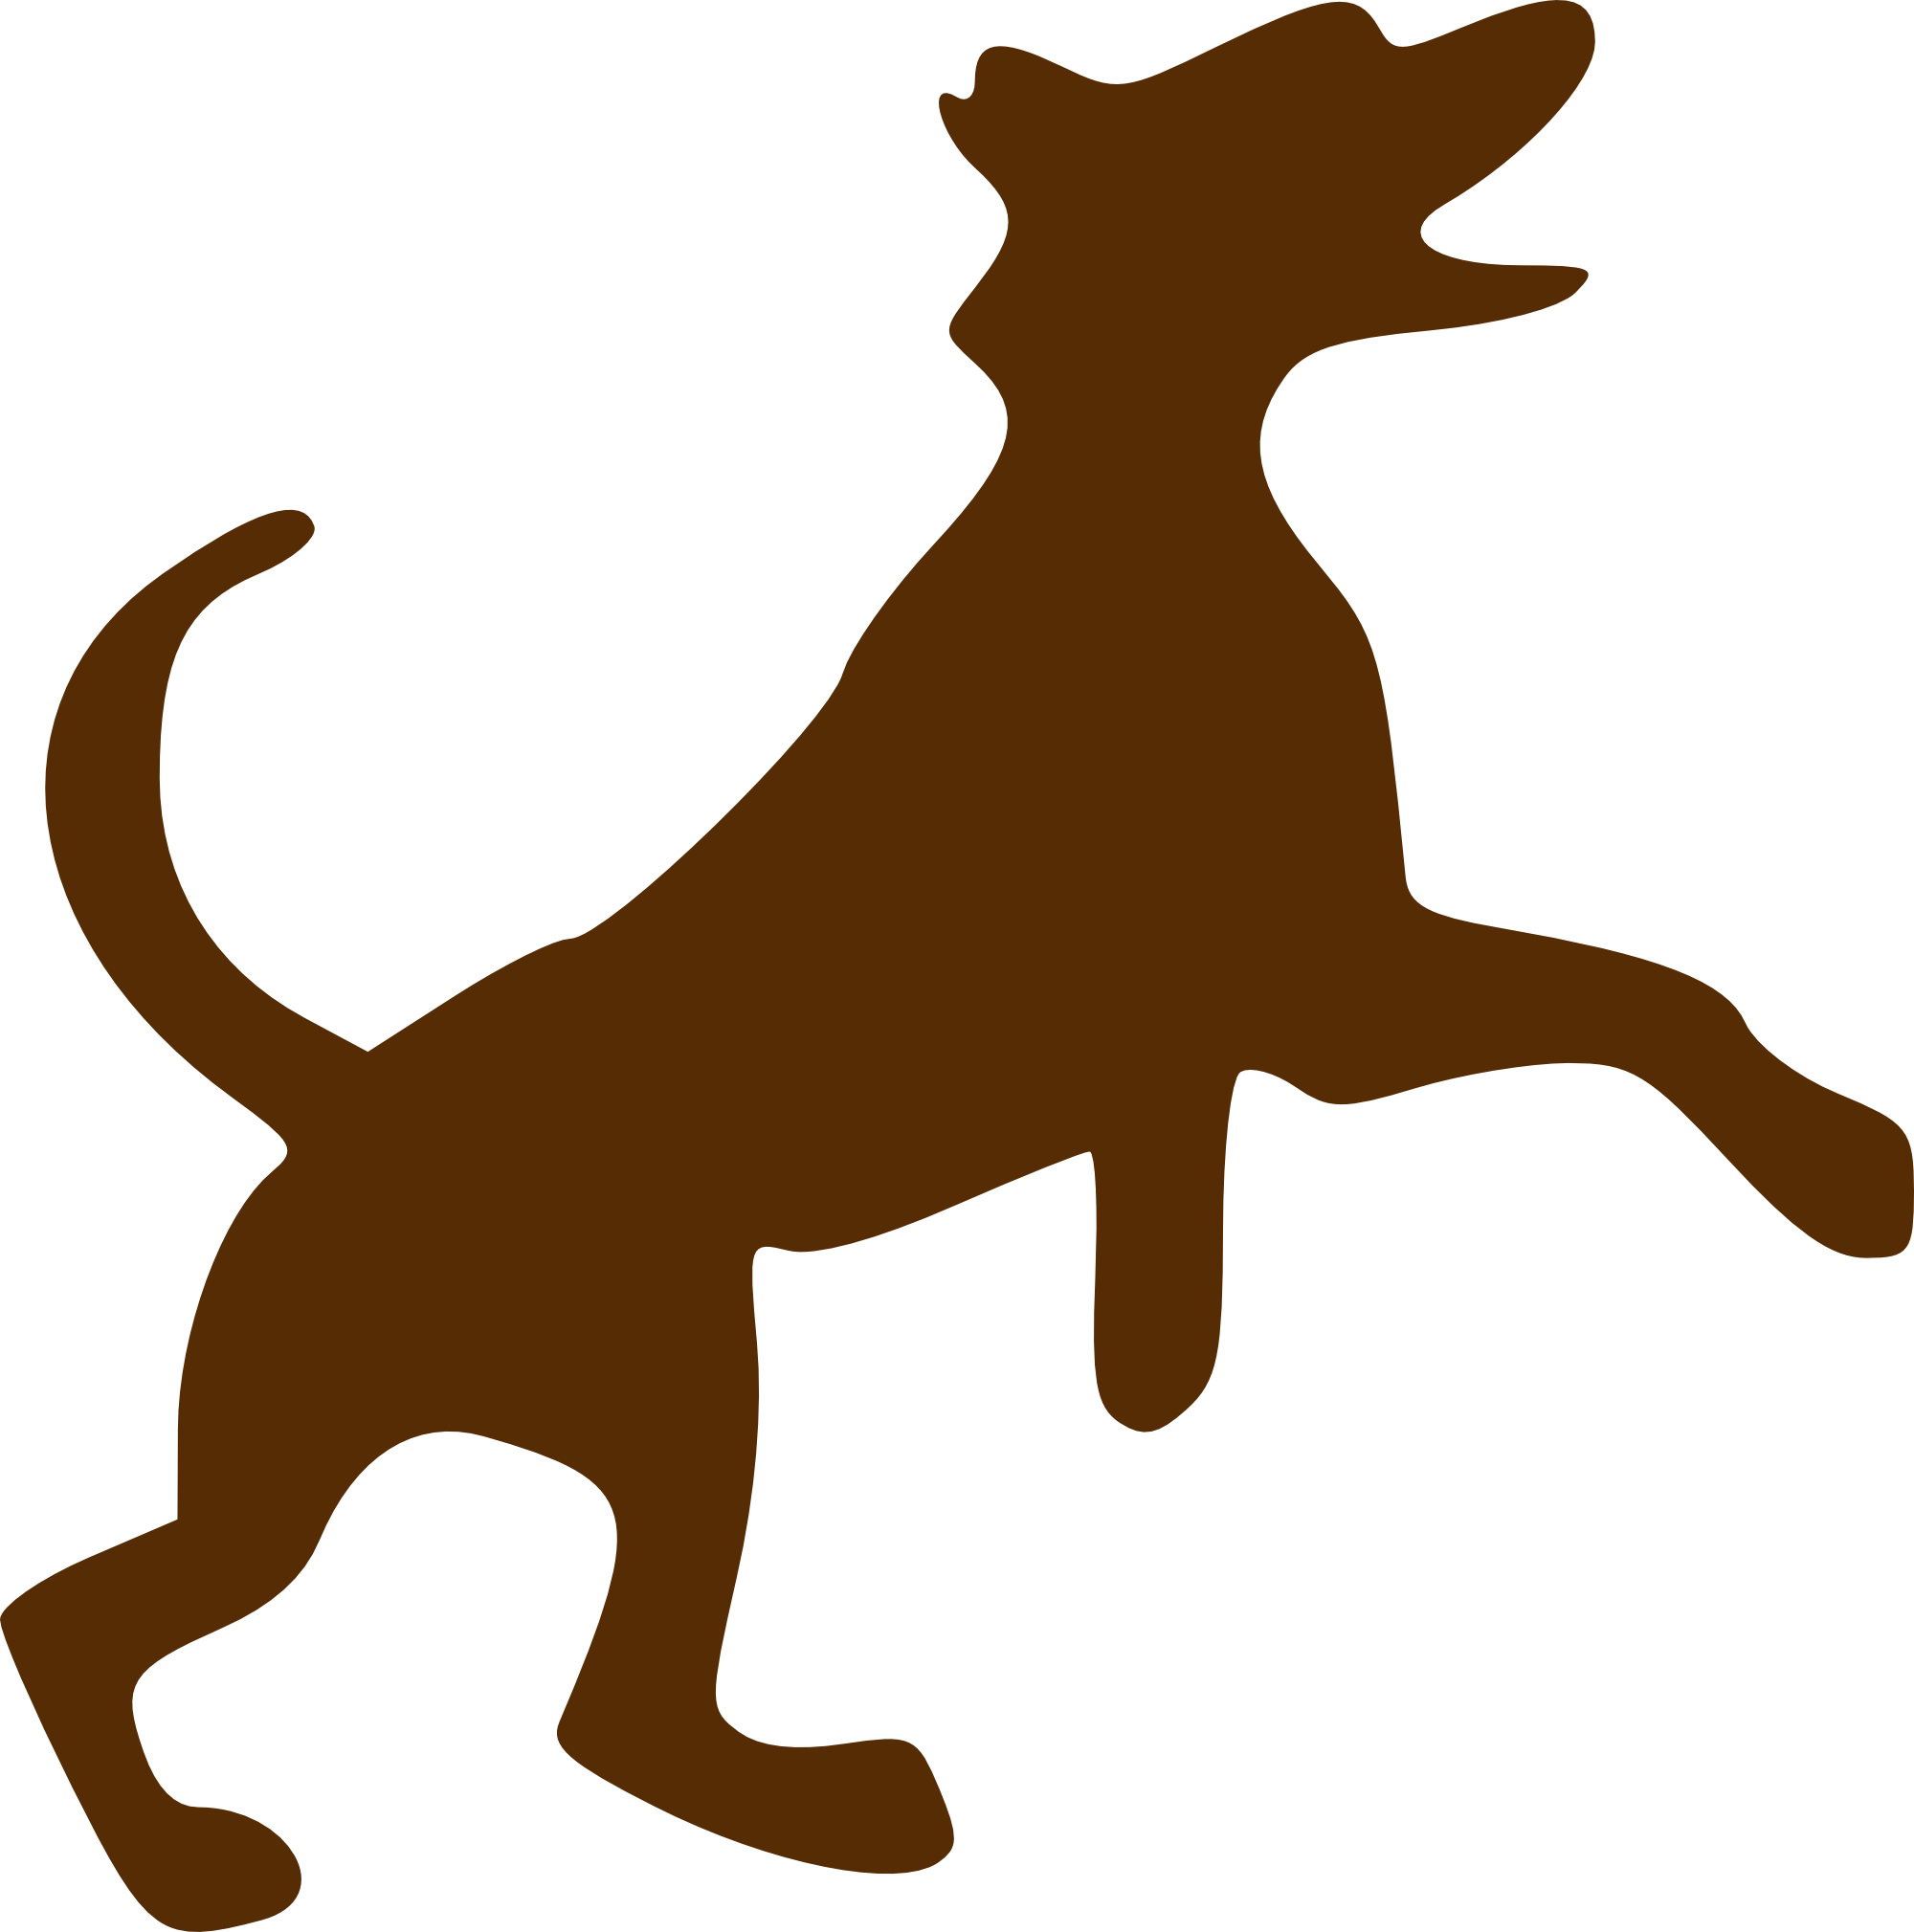 Pet Silhouette Art at GetDrawings.com | Free for personal use Pet ... free stock